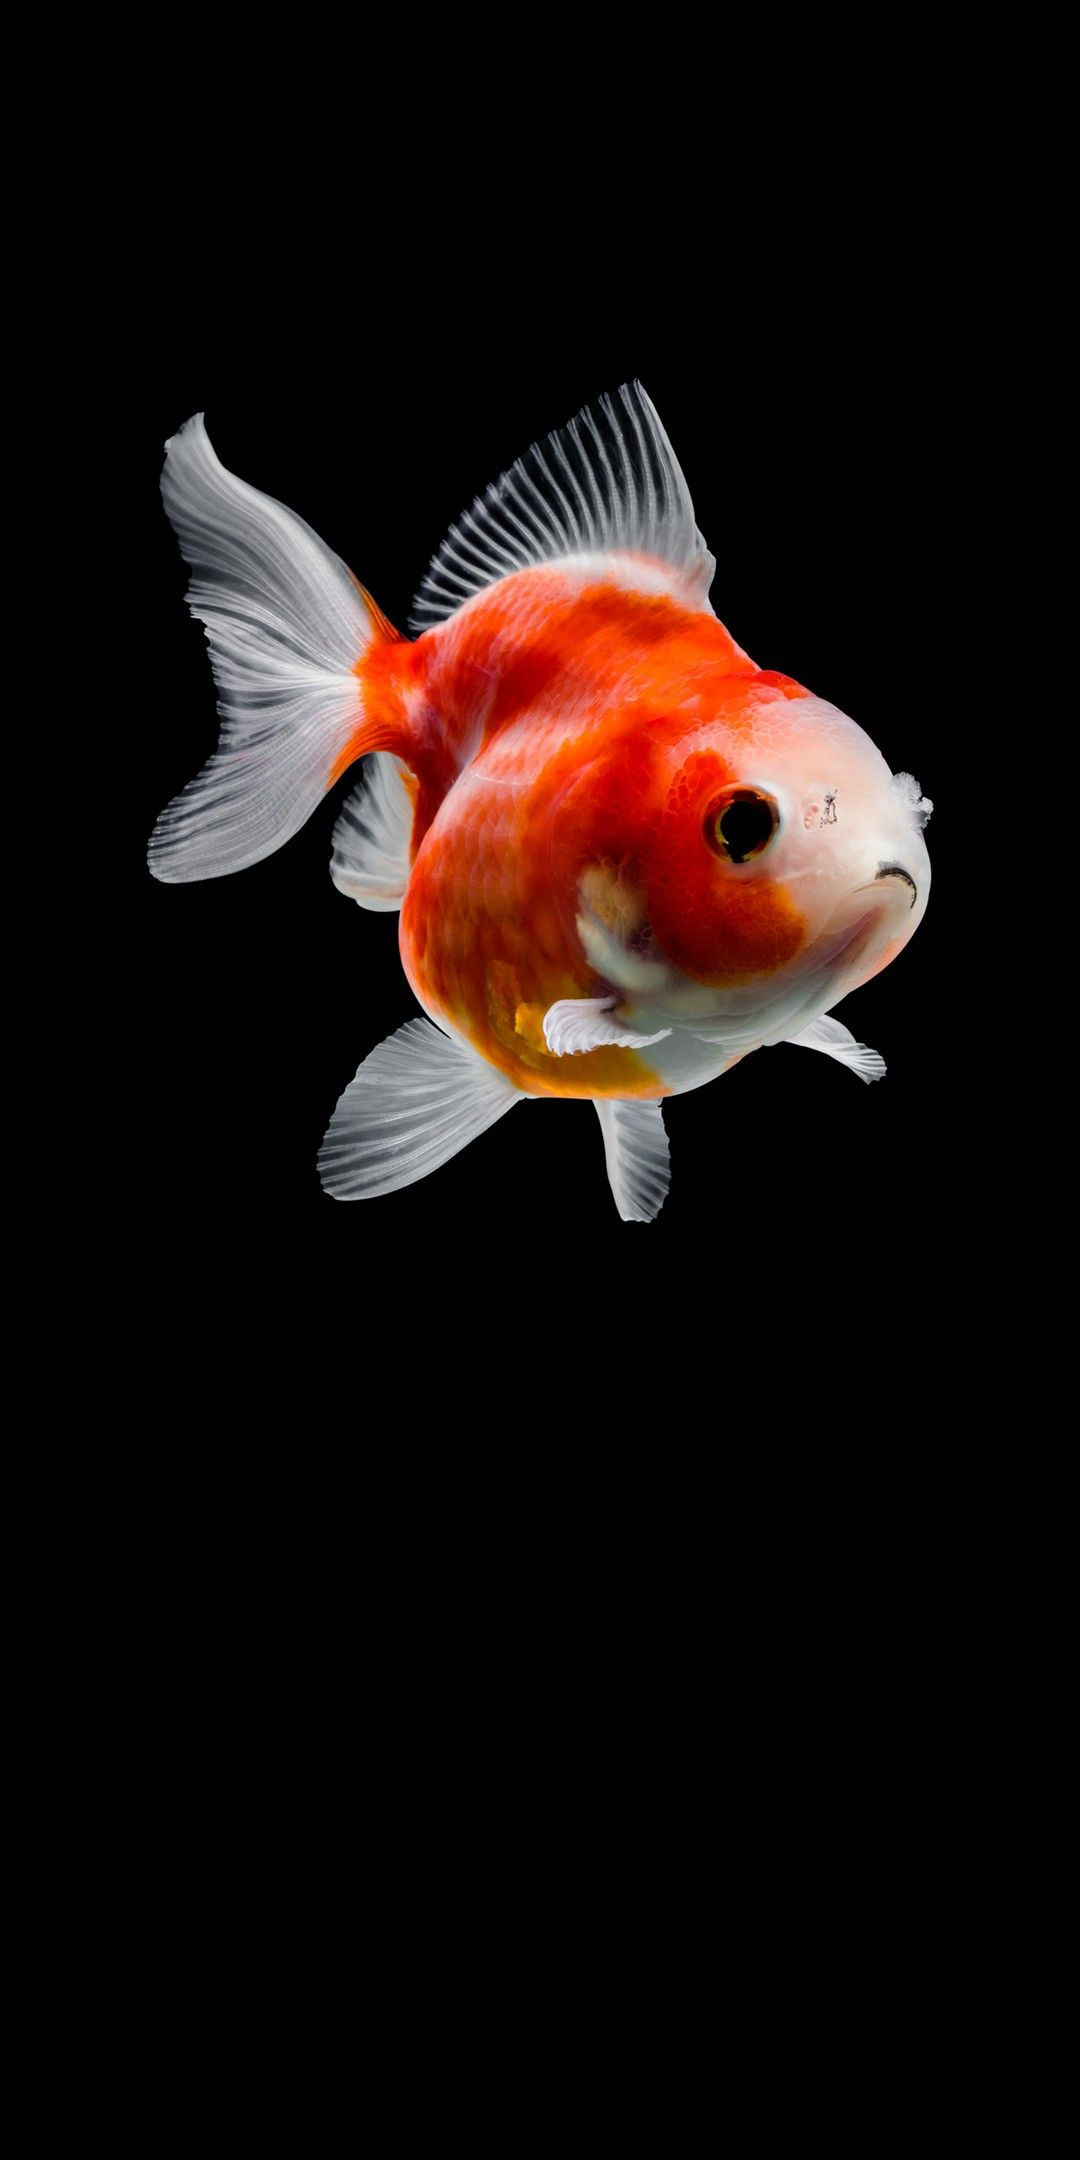 Pin By Iyan Sofyan On Animals Pictures Goldfish Goldfish Wallpaper Cute Fish